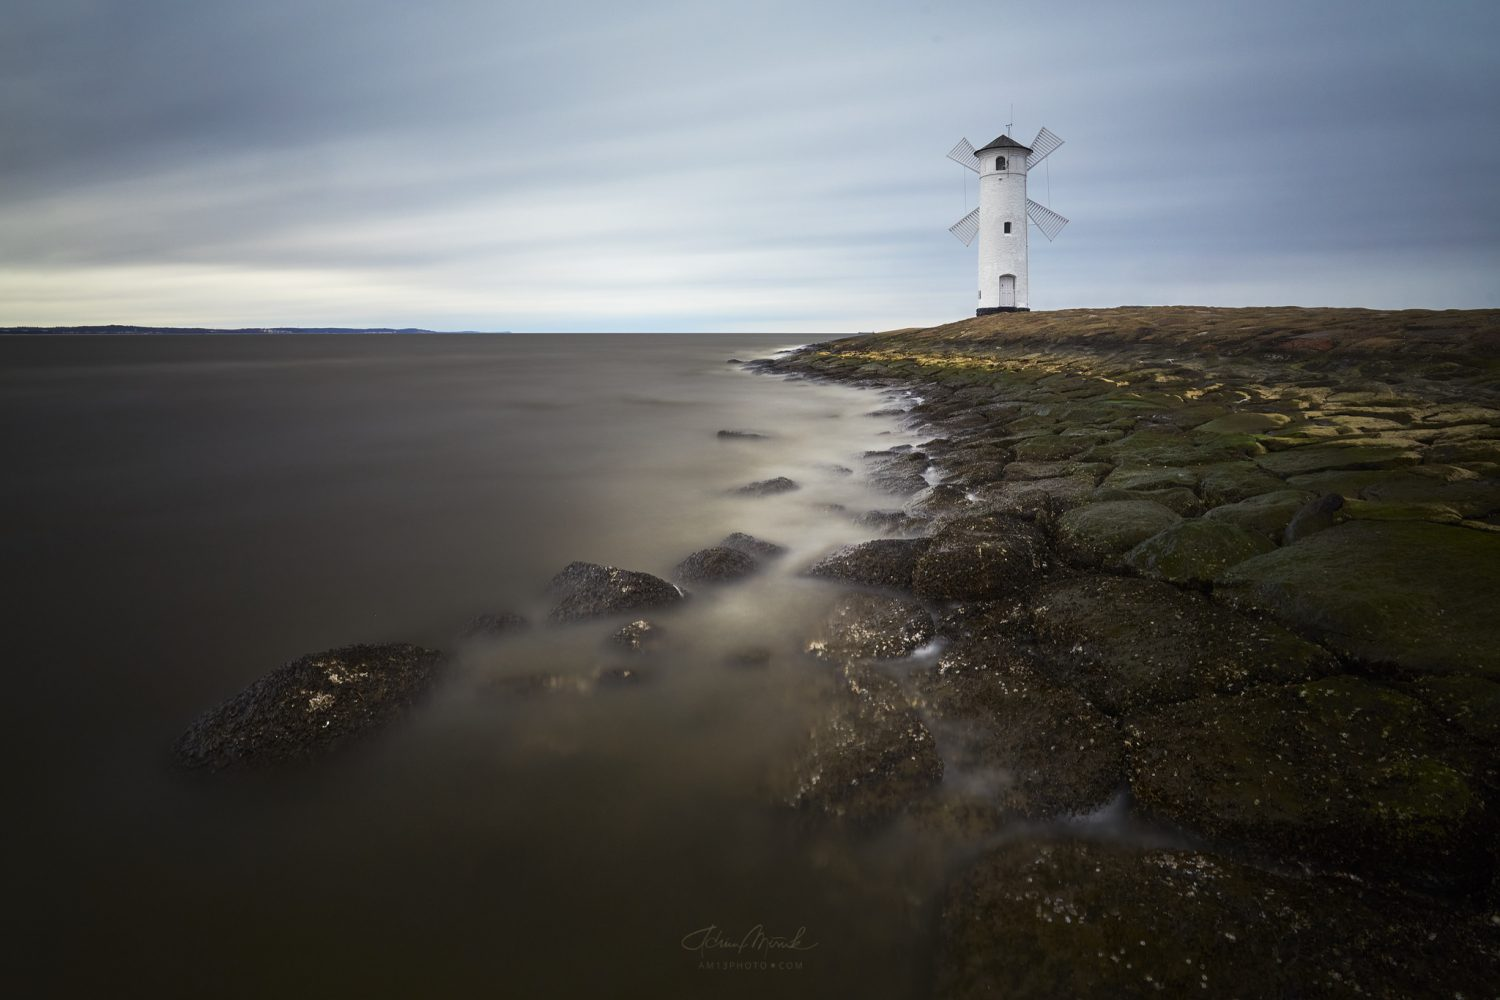 Swinoujscie - old lighthouse